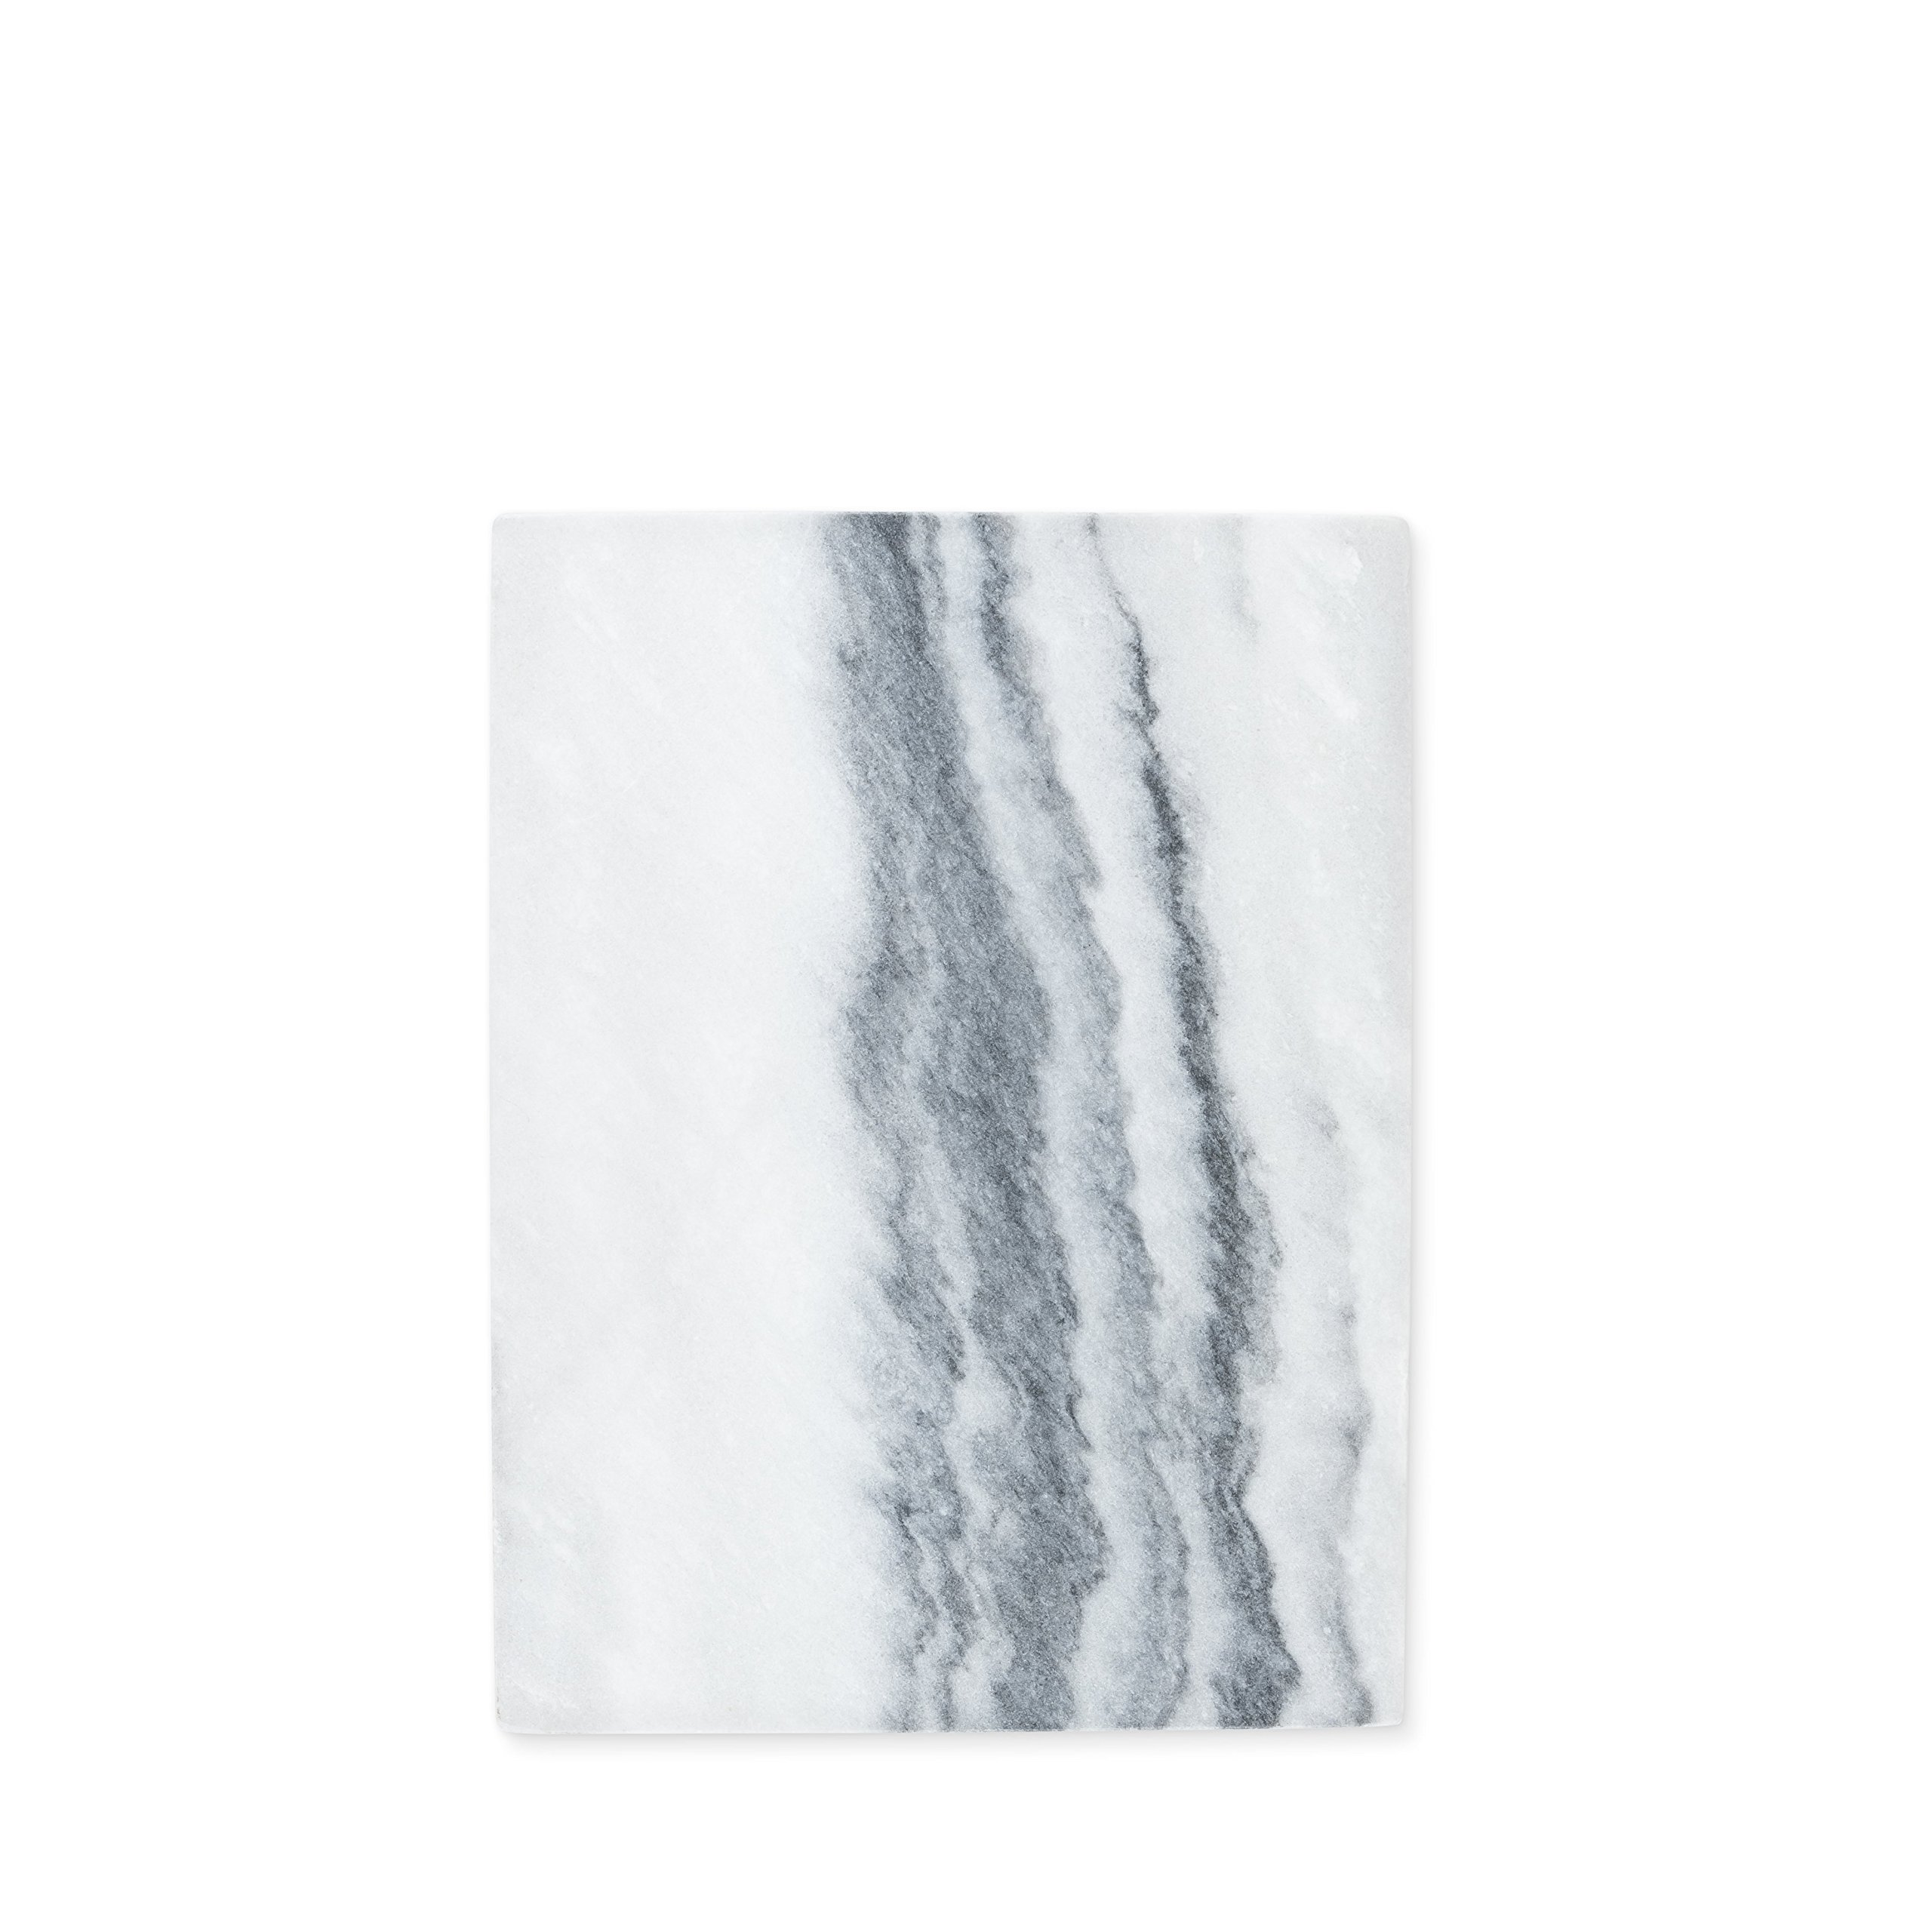 True 7443 Elegance: Rectangular Marble Cheeseboard in Gray Chesseboard